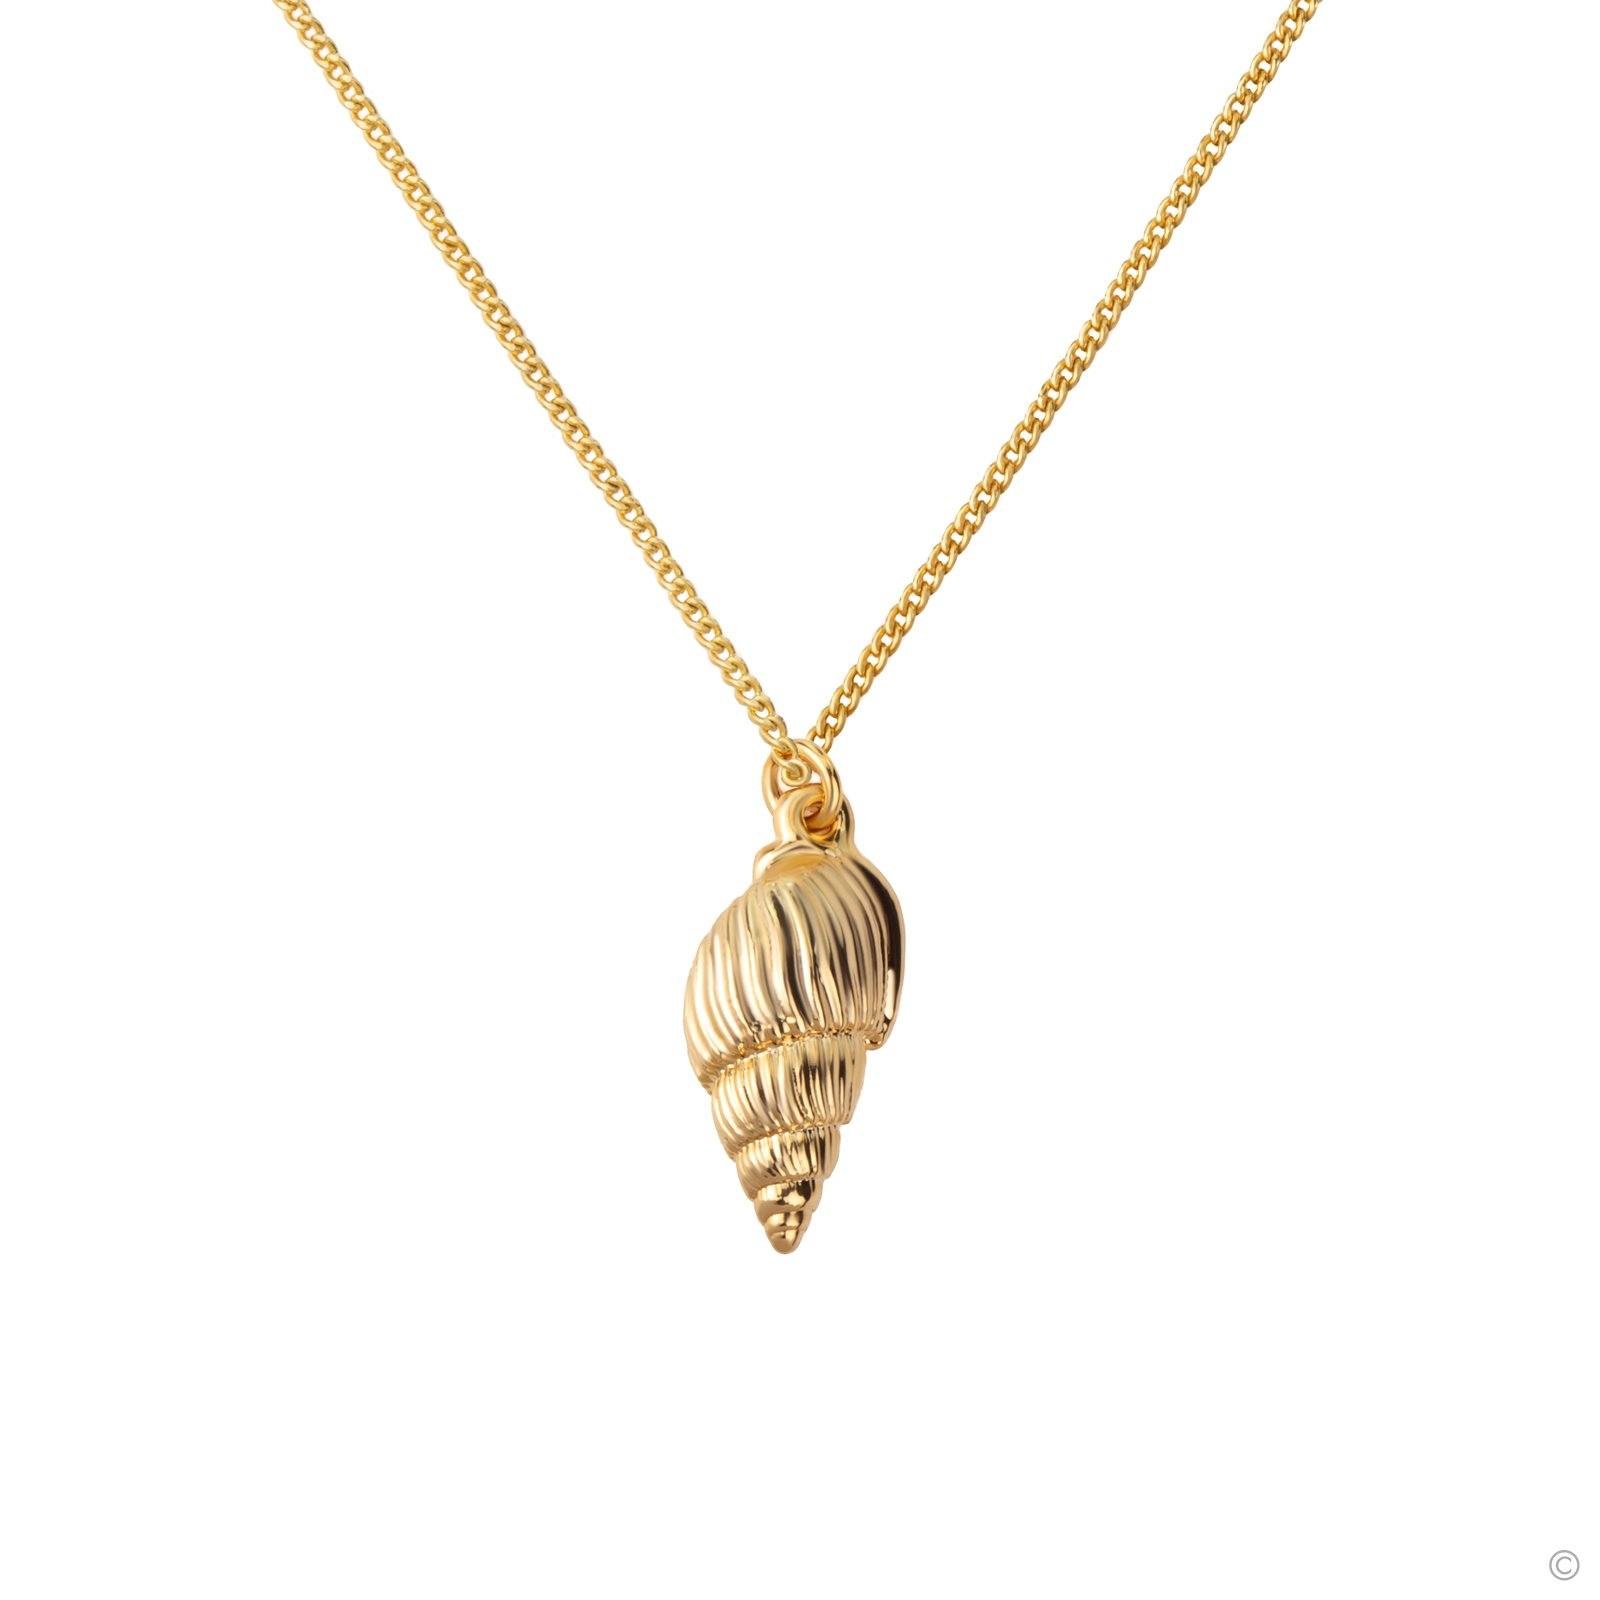 Atlantic Triton Necklace